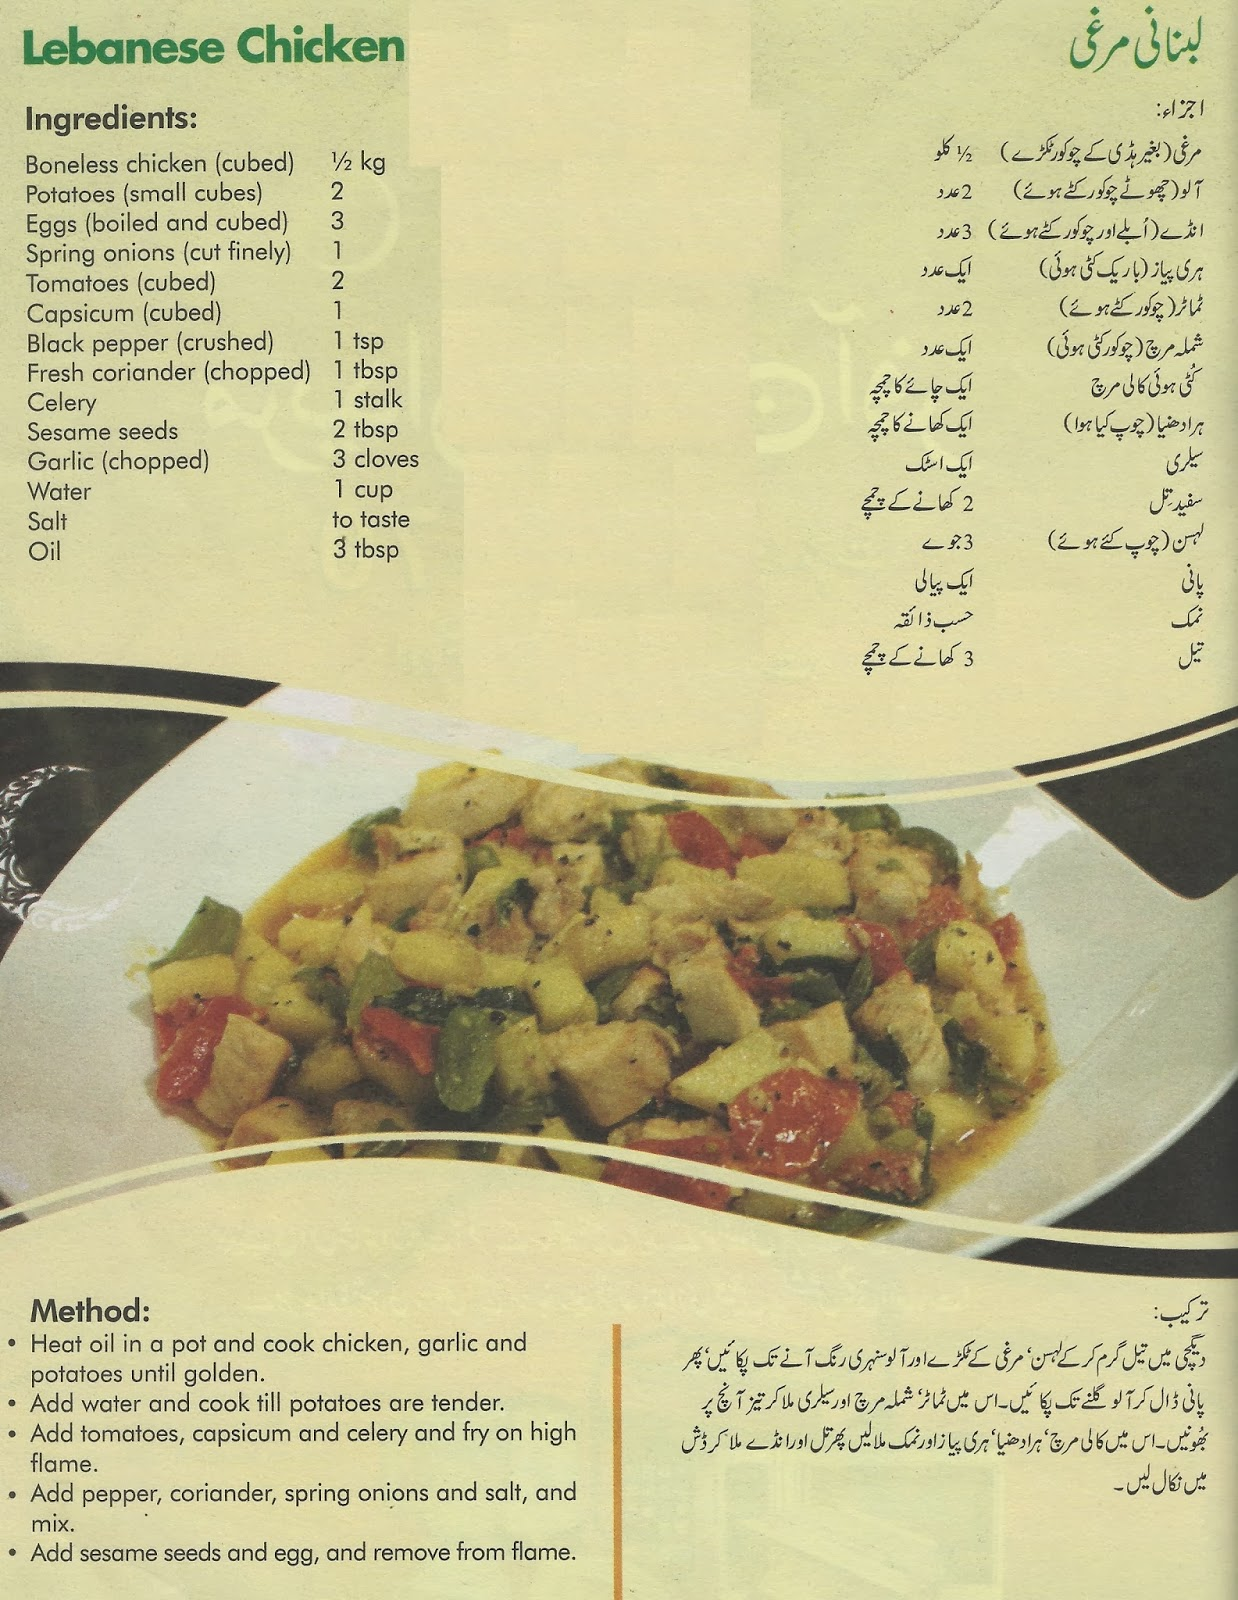 Coking philospher a new labane dish lebanese chicken new cooking a new labane dish lebanese chicken new cooking recipe in urdu and english forumfinder Gallery